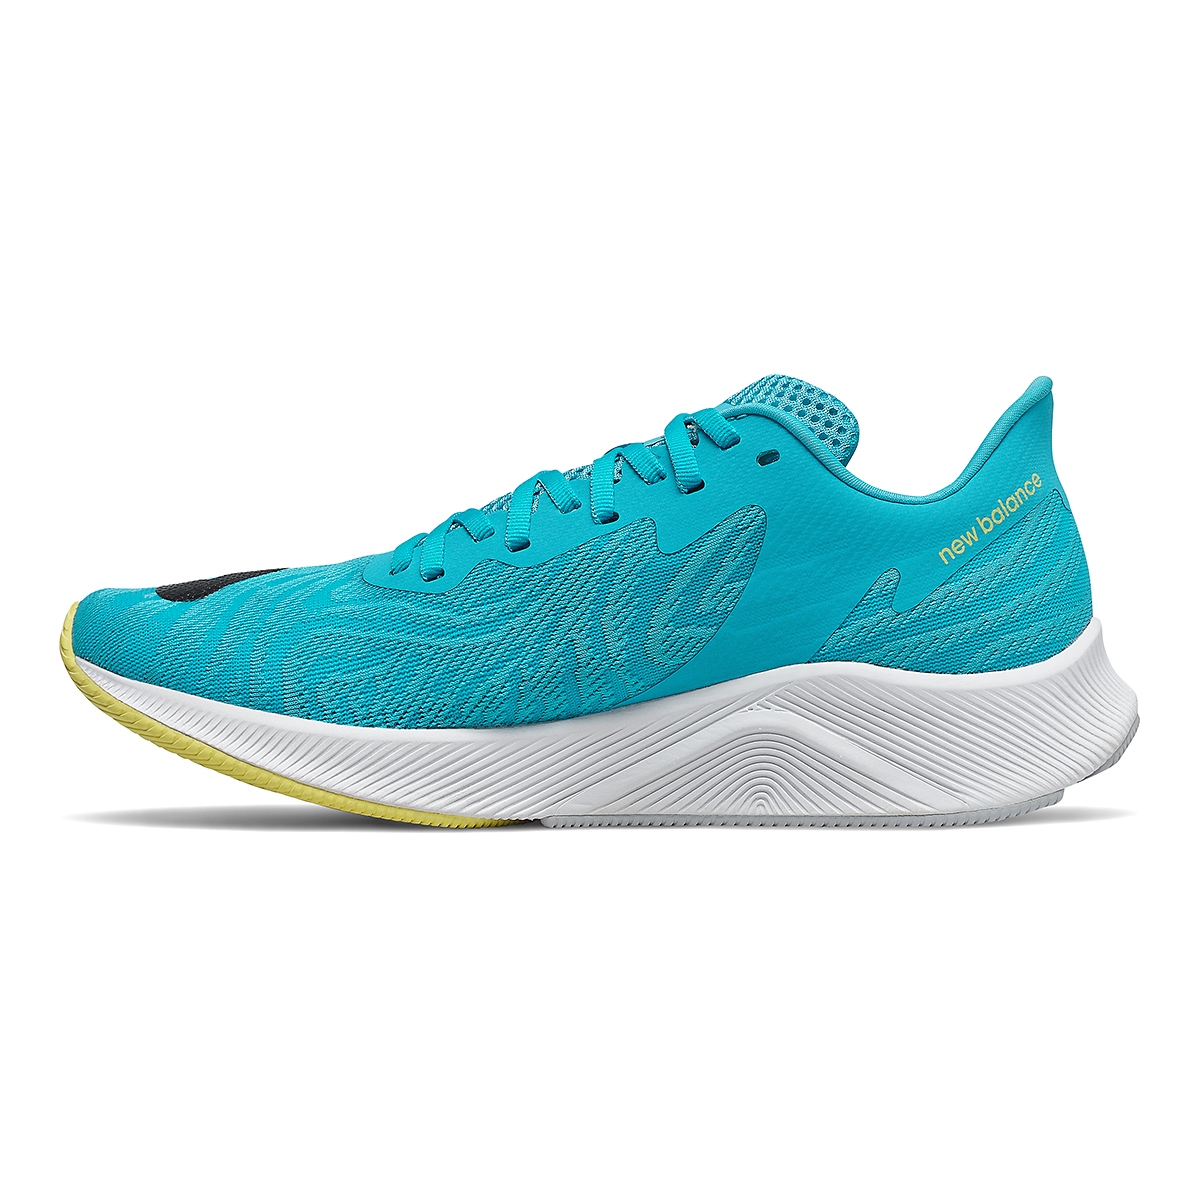 Men's New Balance Fuelcell Prism Running Shoe - Color: Virtual Sky/First Light - Size: 7 - Width: Wide, Virtual Sky/First Light, large, image 2